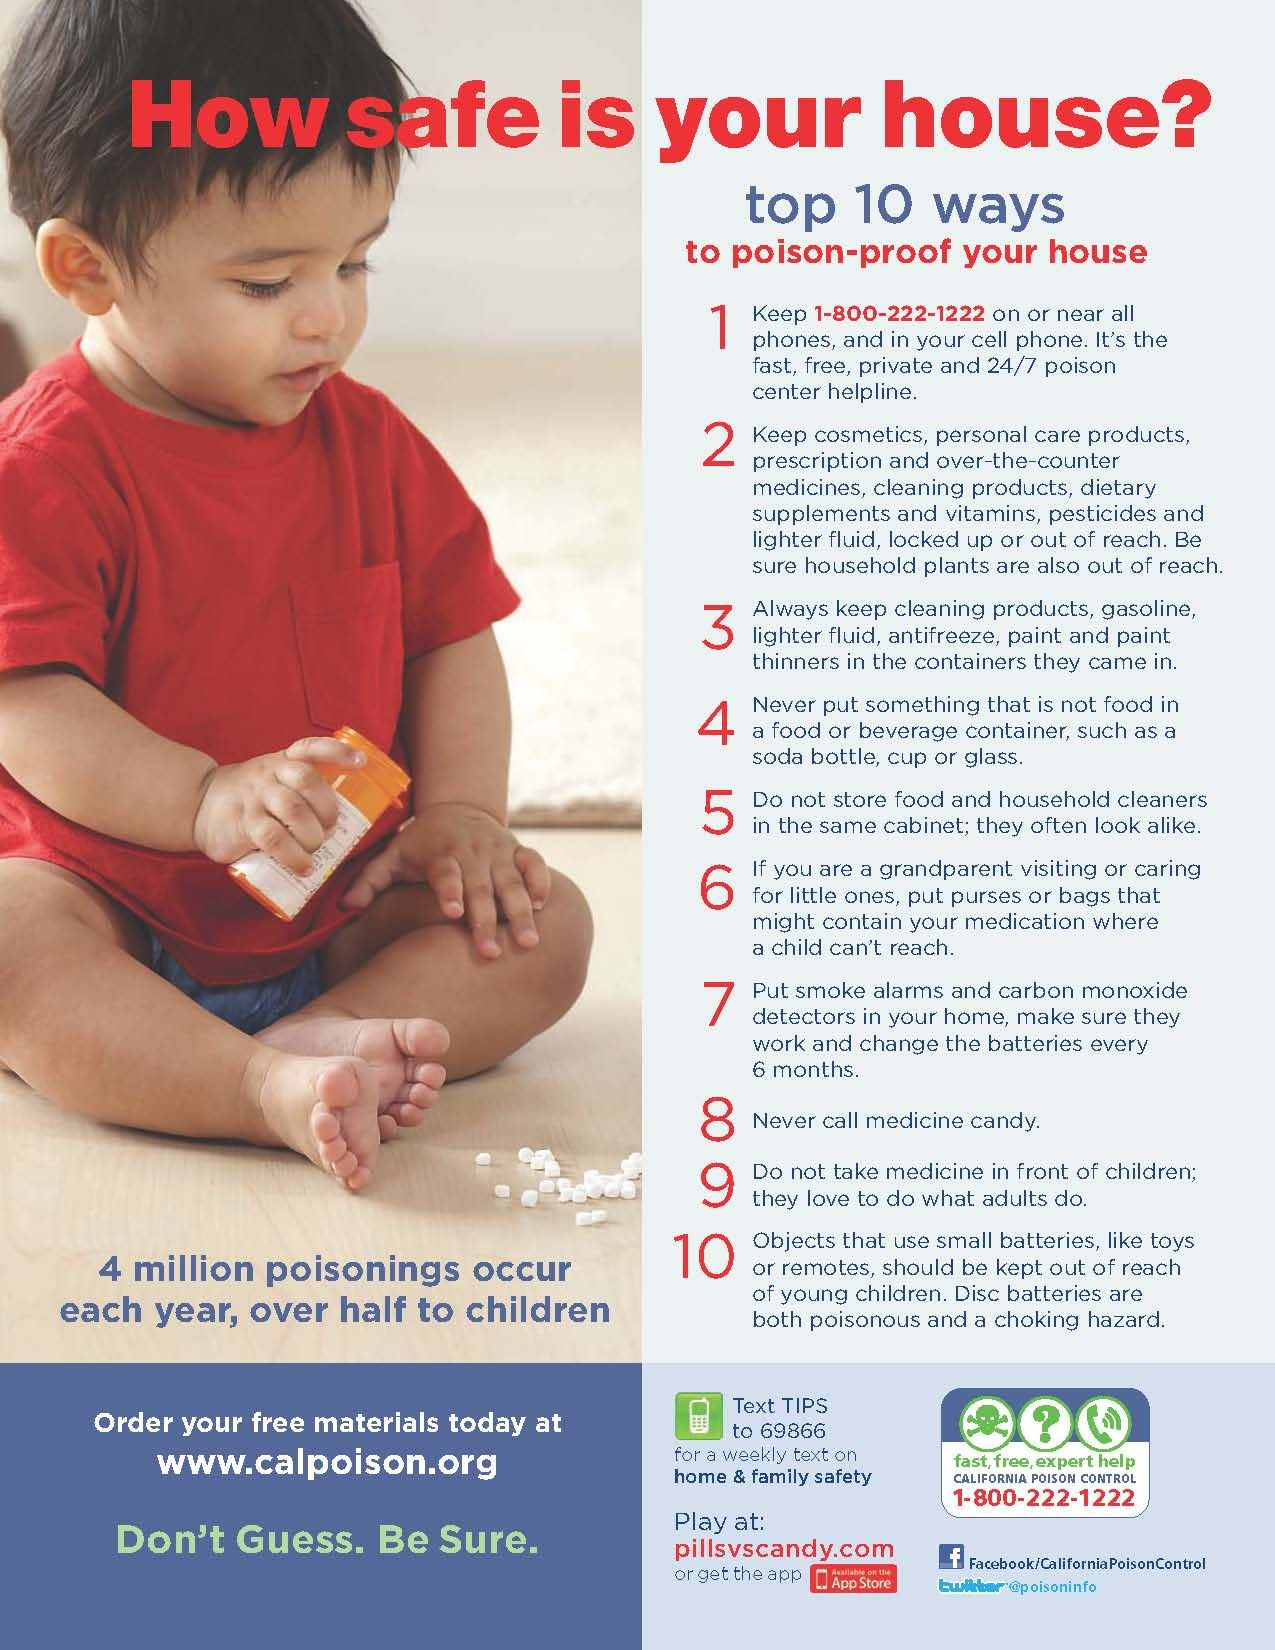 10 Tips For Home Family Safety Safety And First Aid Family And Consumer Science Home Safety